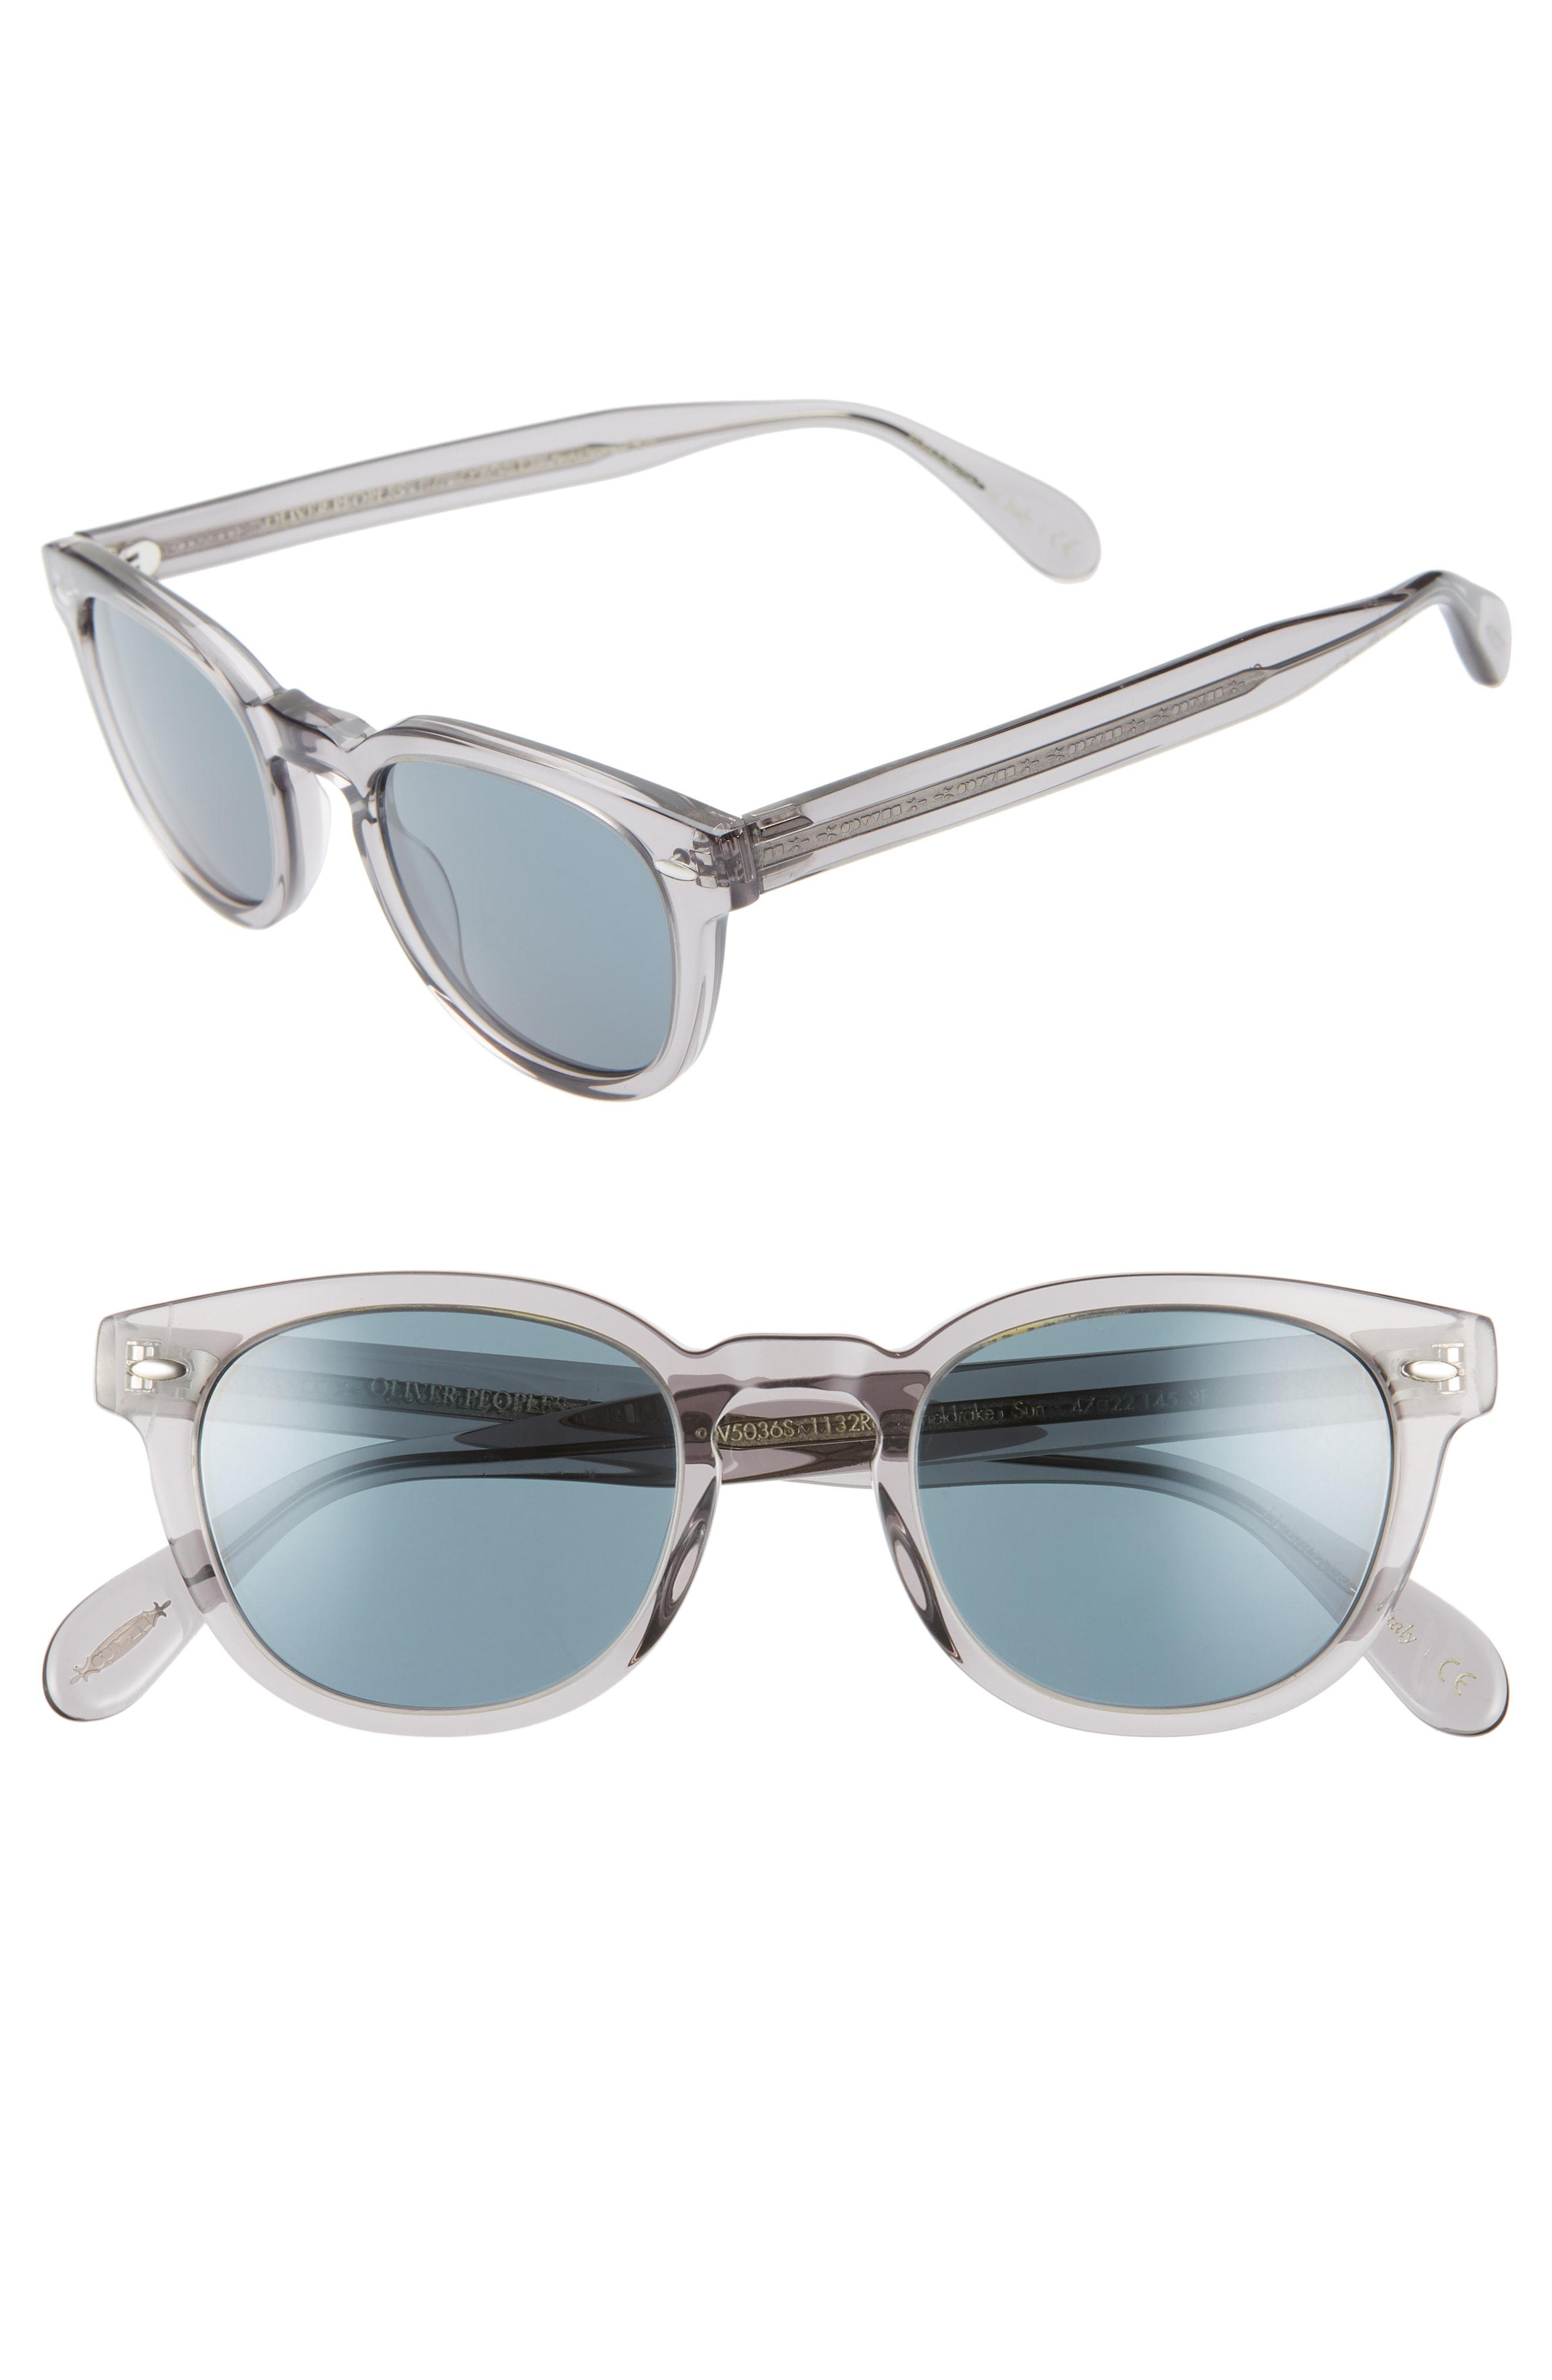 a6a31d1b33 Lyst - Oliver Peoples Sheldrake 47mm Sunglasses - Workman Grey in ...